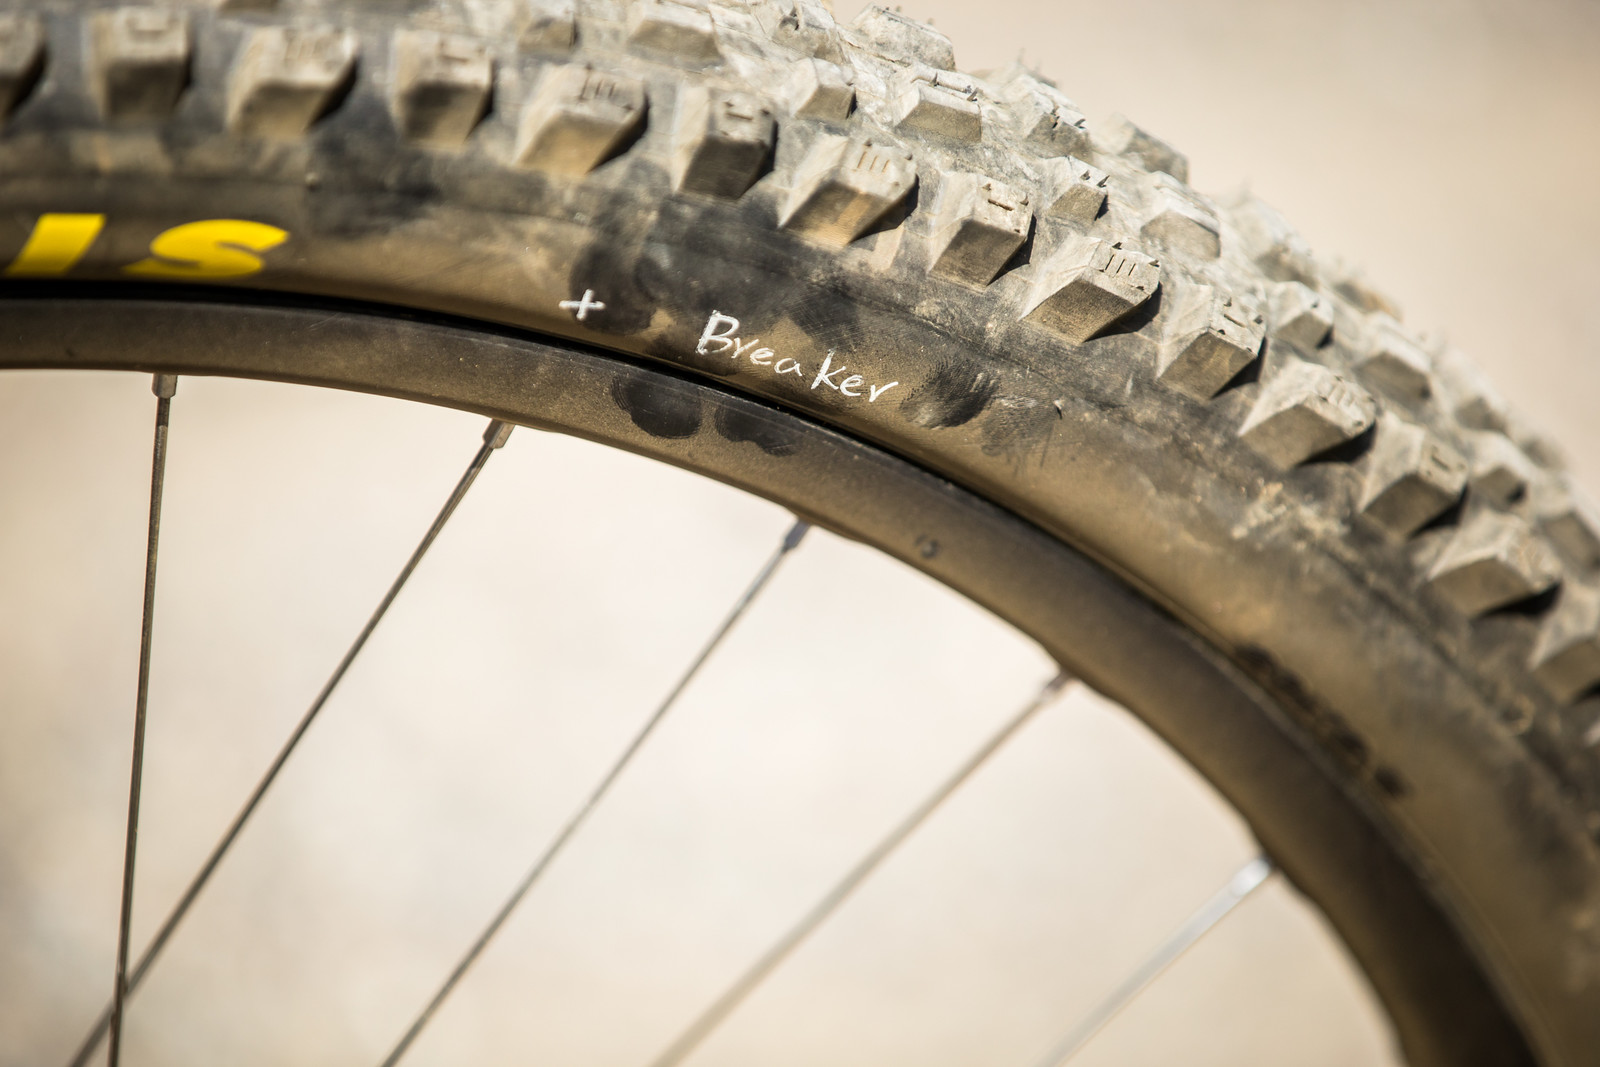 Maxxis Assegai Front Tire with Breaker Construction - WINNING BIKE - Loris Vergier's Santa Cruz V10cc 29 - Mountain Biking Pictures - Vital MTB